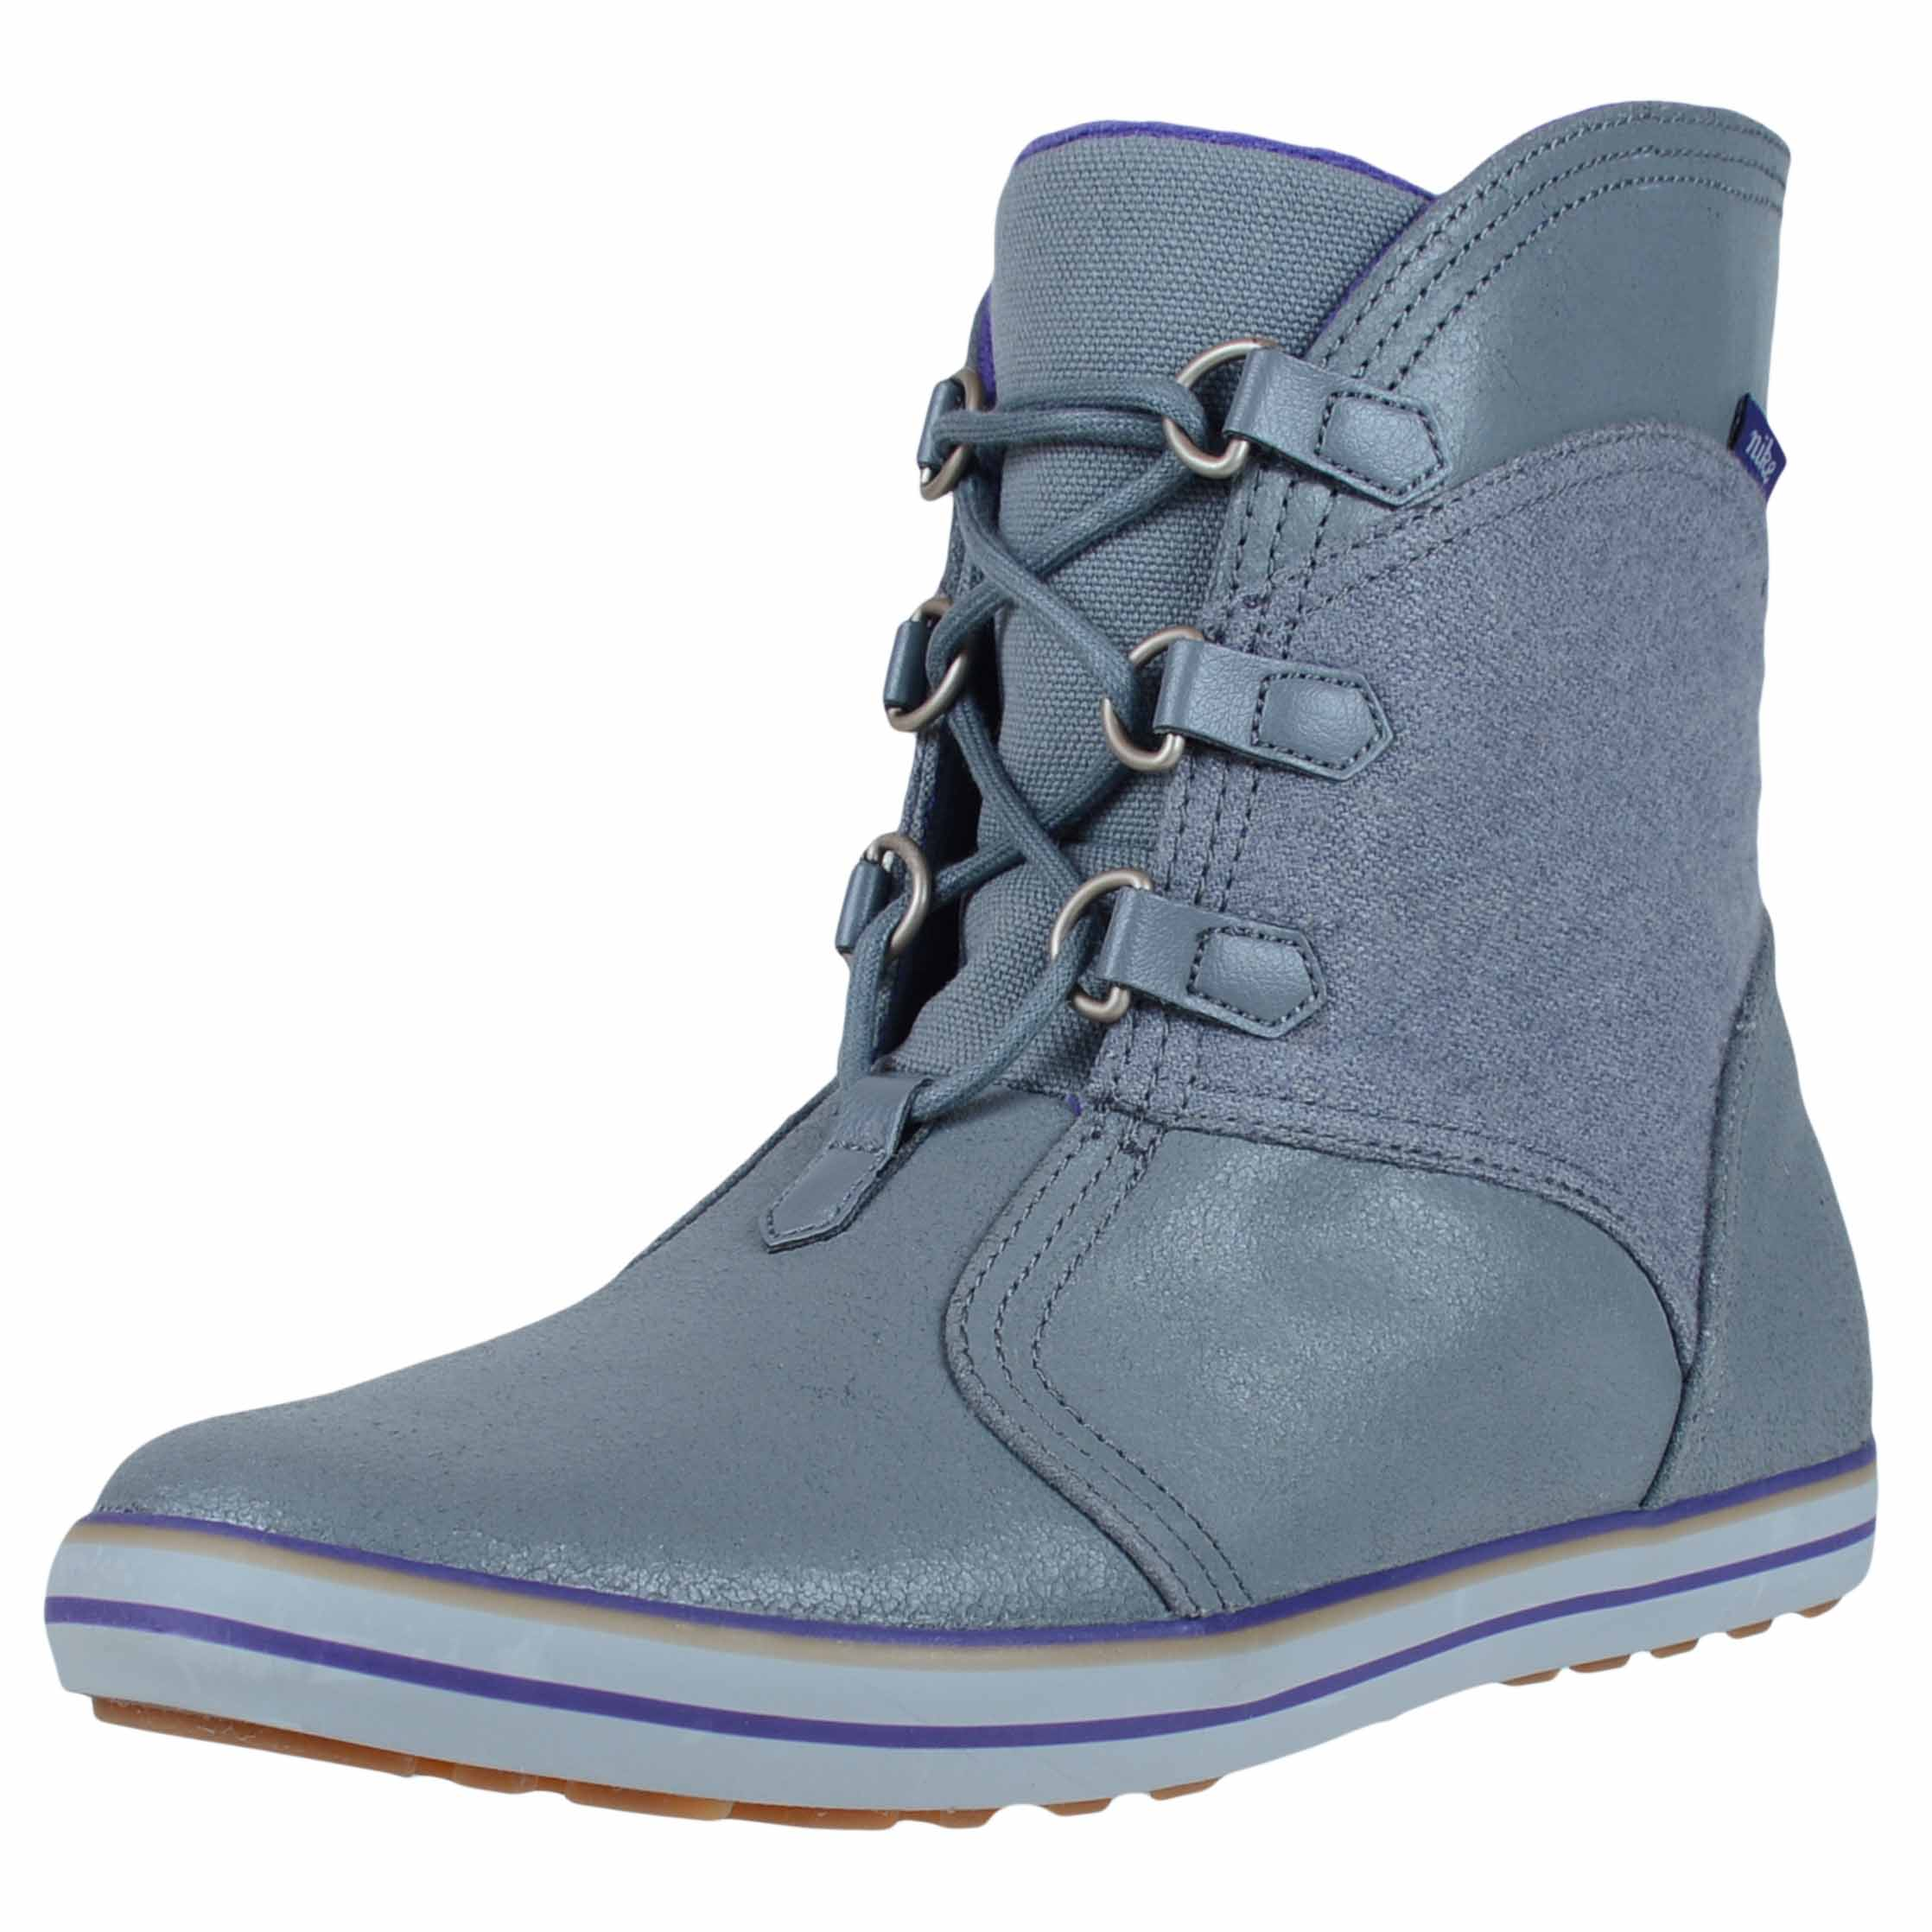 Nike WOMENS CARICO MID LEATHER BOOTS COOL GREY COURT PURP...